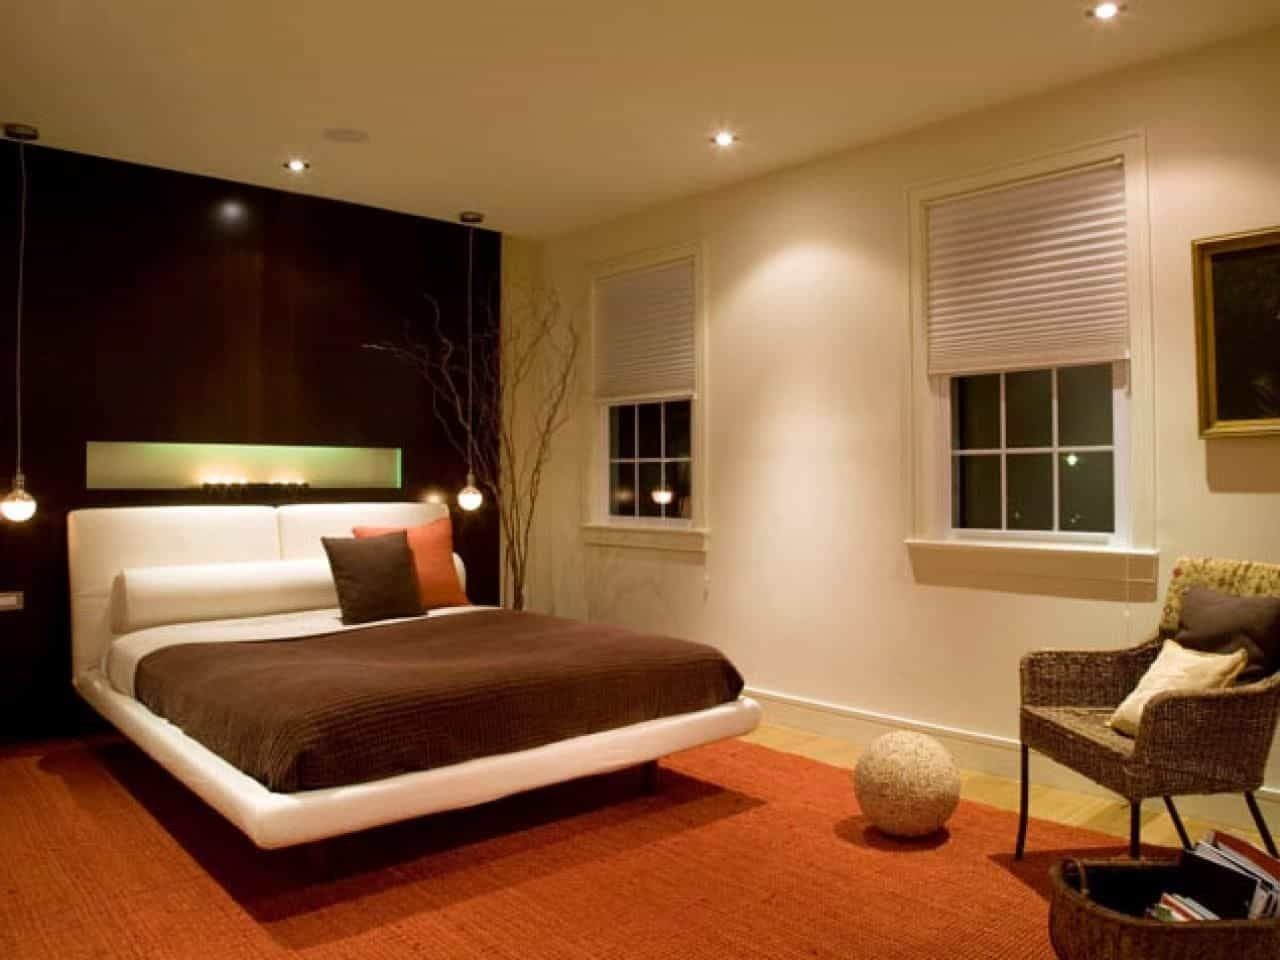 Modern Bedroom Furnished With Floating Bed And Illuminated With with regard to How to Decorate Modern Bedroom with Lighting Design Ideas - modern bedroom with lighting